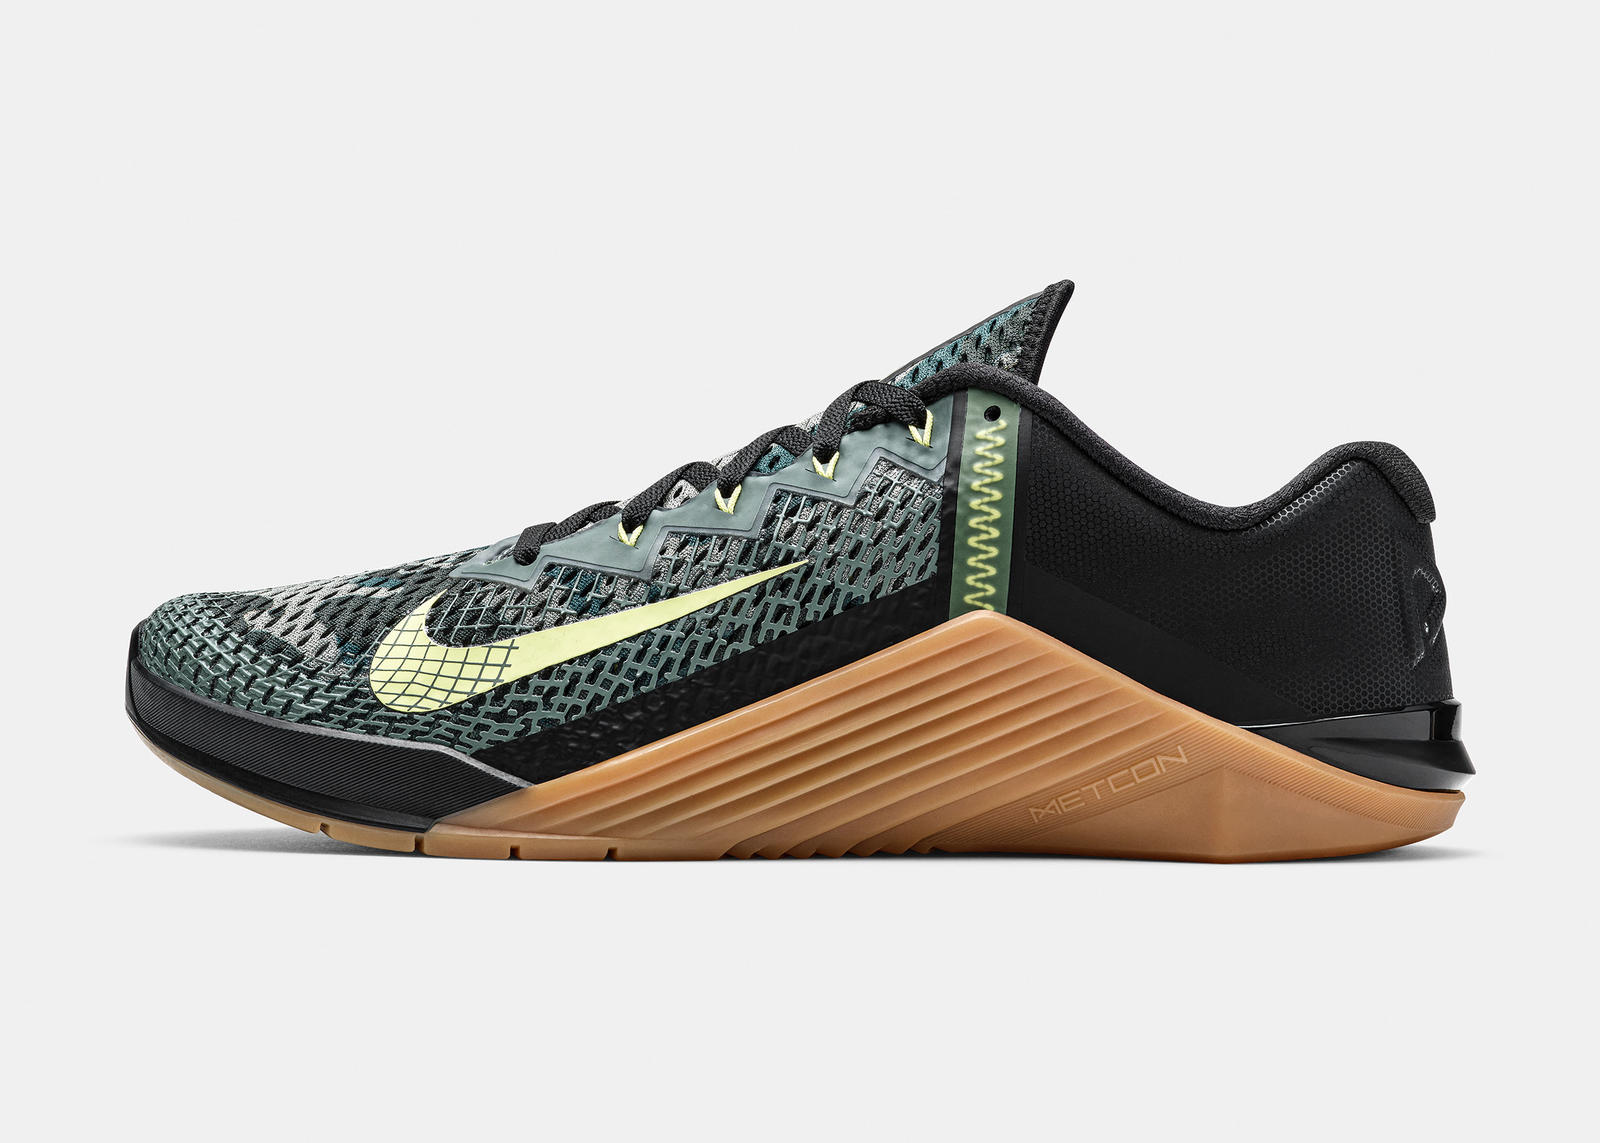 Nike Metcon 6 Official Images and Release Date 1